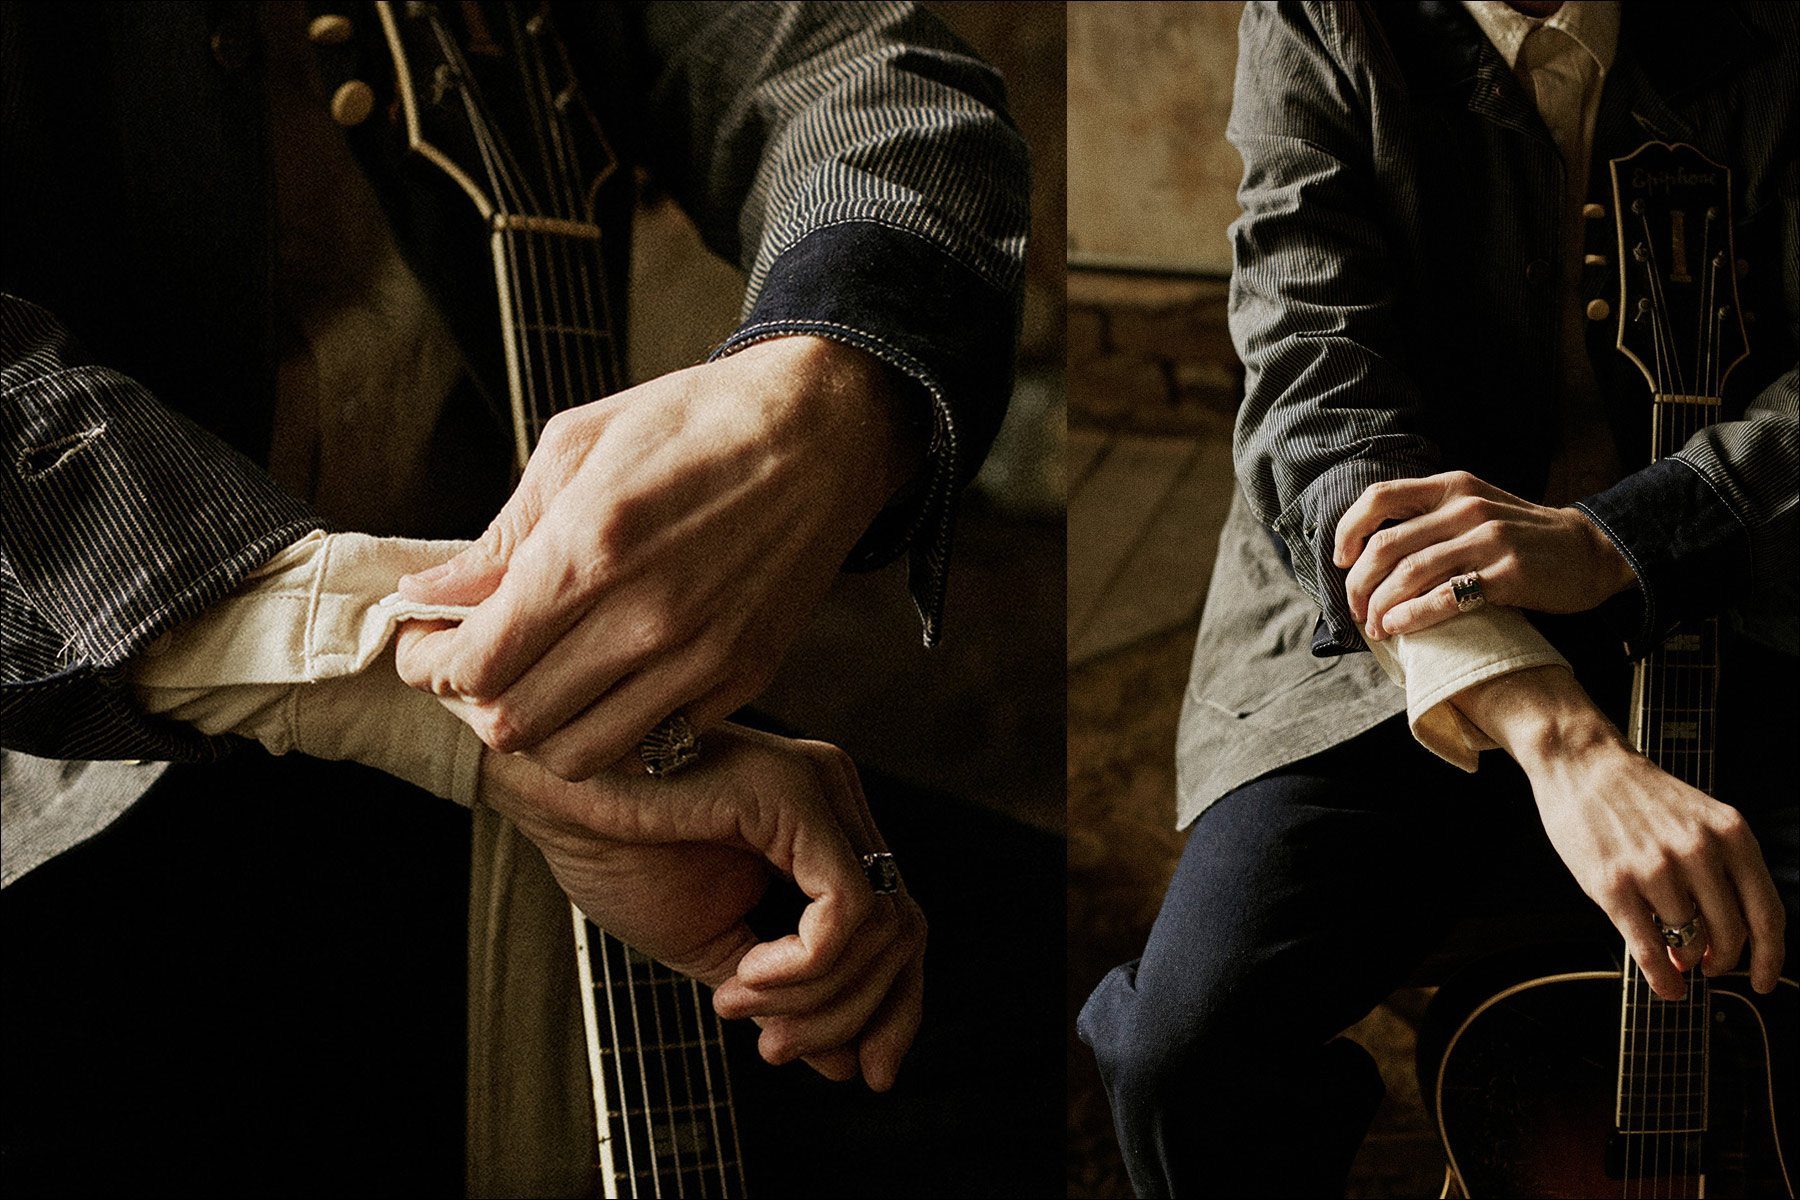 Detail shots of Pokey LaFarge clothing for Knickerbocker Mfg Co. Photographs by Noah Sahady. Ponyboy magazine New York.